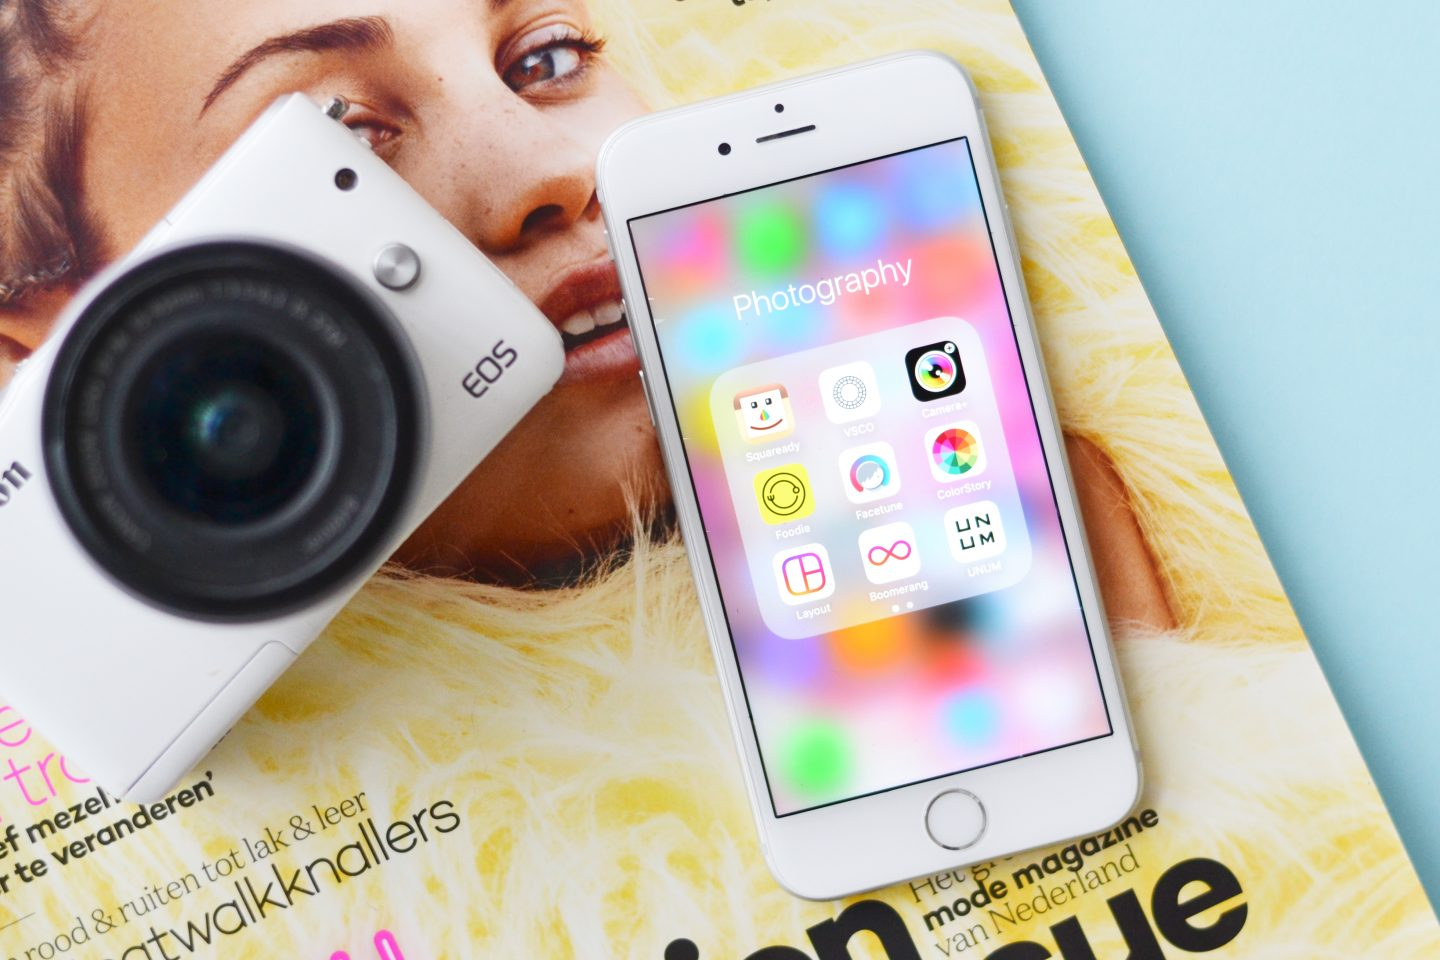 iphone photo editing, instagram tips and tricks